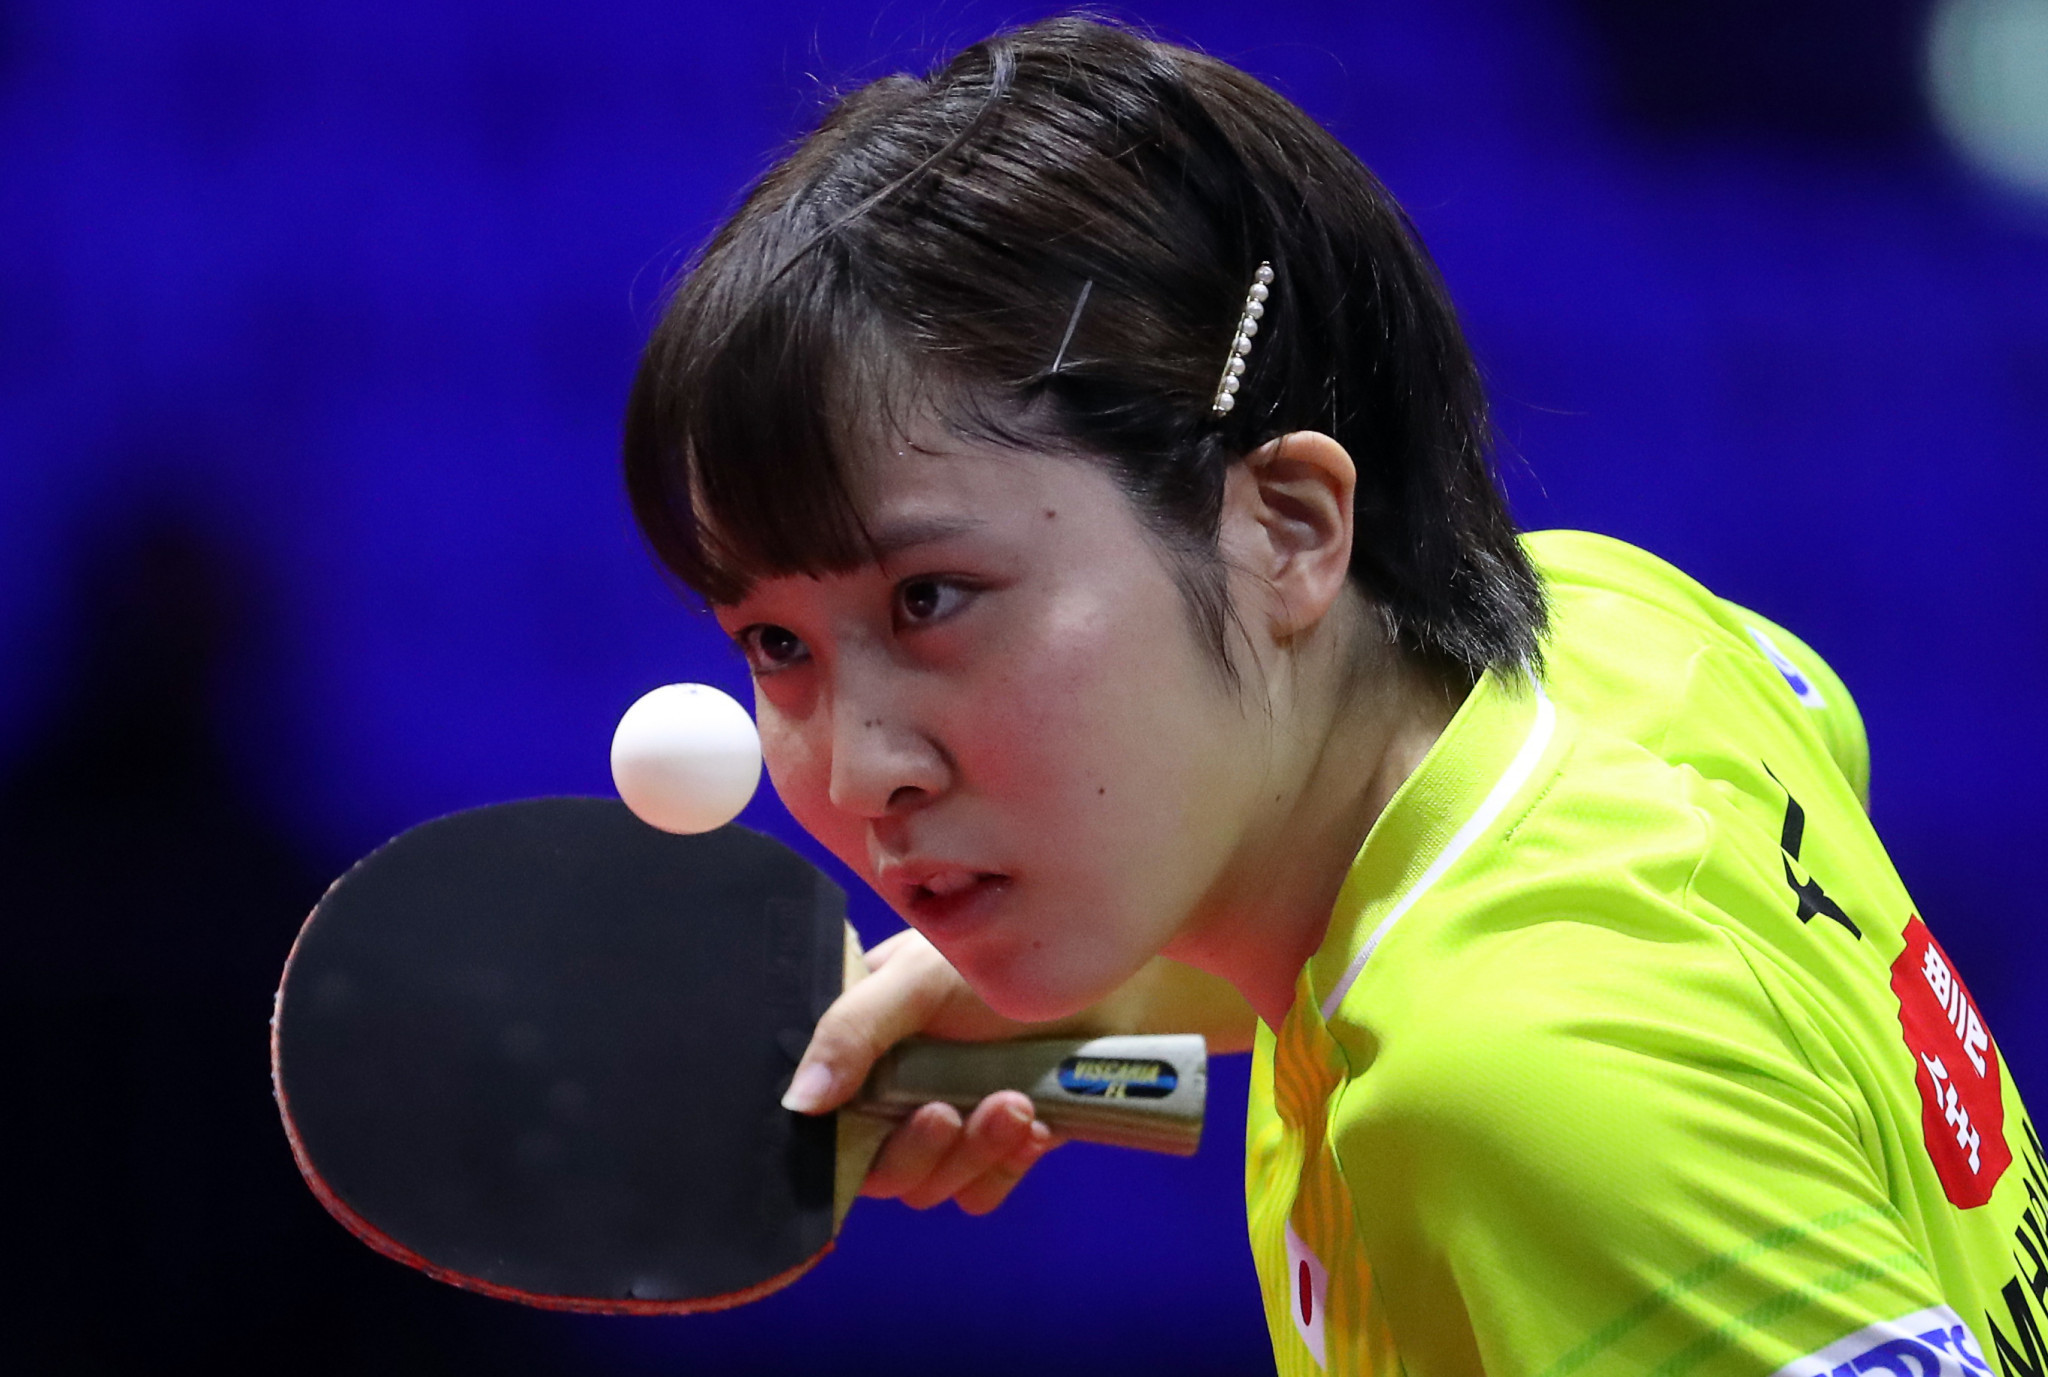 Ding Ning remains on course to win her third straight title ©Getty Images